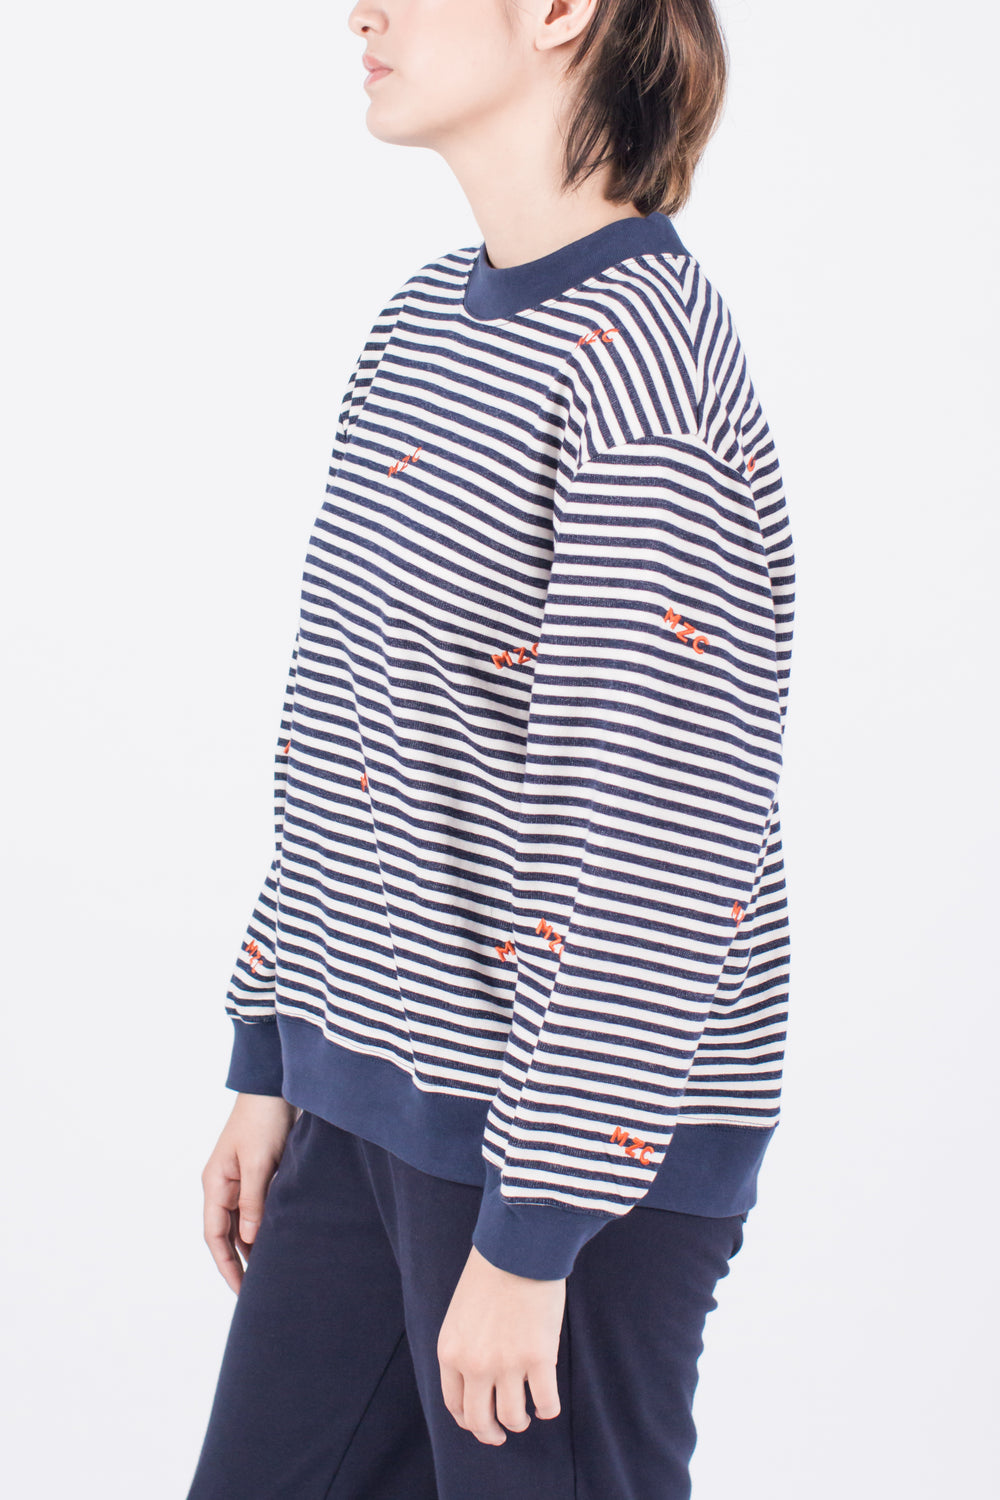 MZC Oversized Sweatshirt Modest Women Stripe Navy Pullover with Logo in 100% Cotton